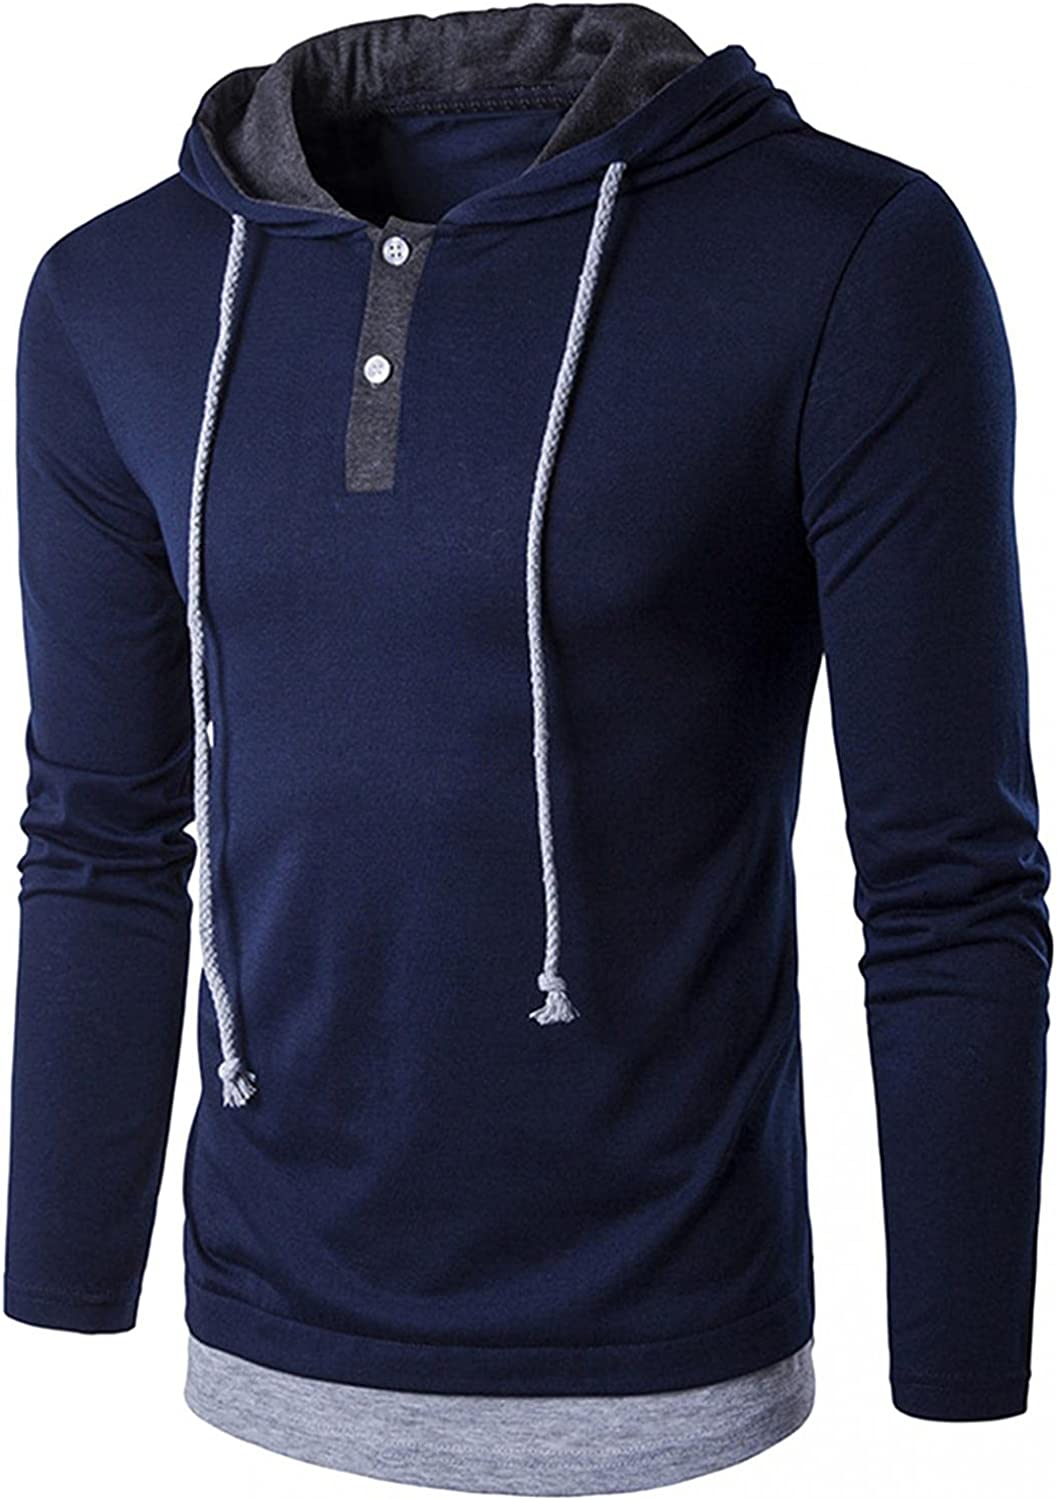 Mens Hooded Pullover Tops Casual Long Sleeve Drawstring Hoodies Regular Fit Cotton Blouse Workout Running Shirts